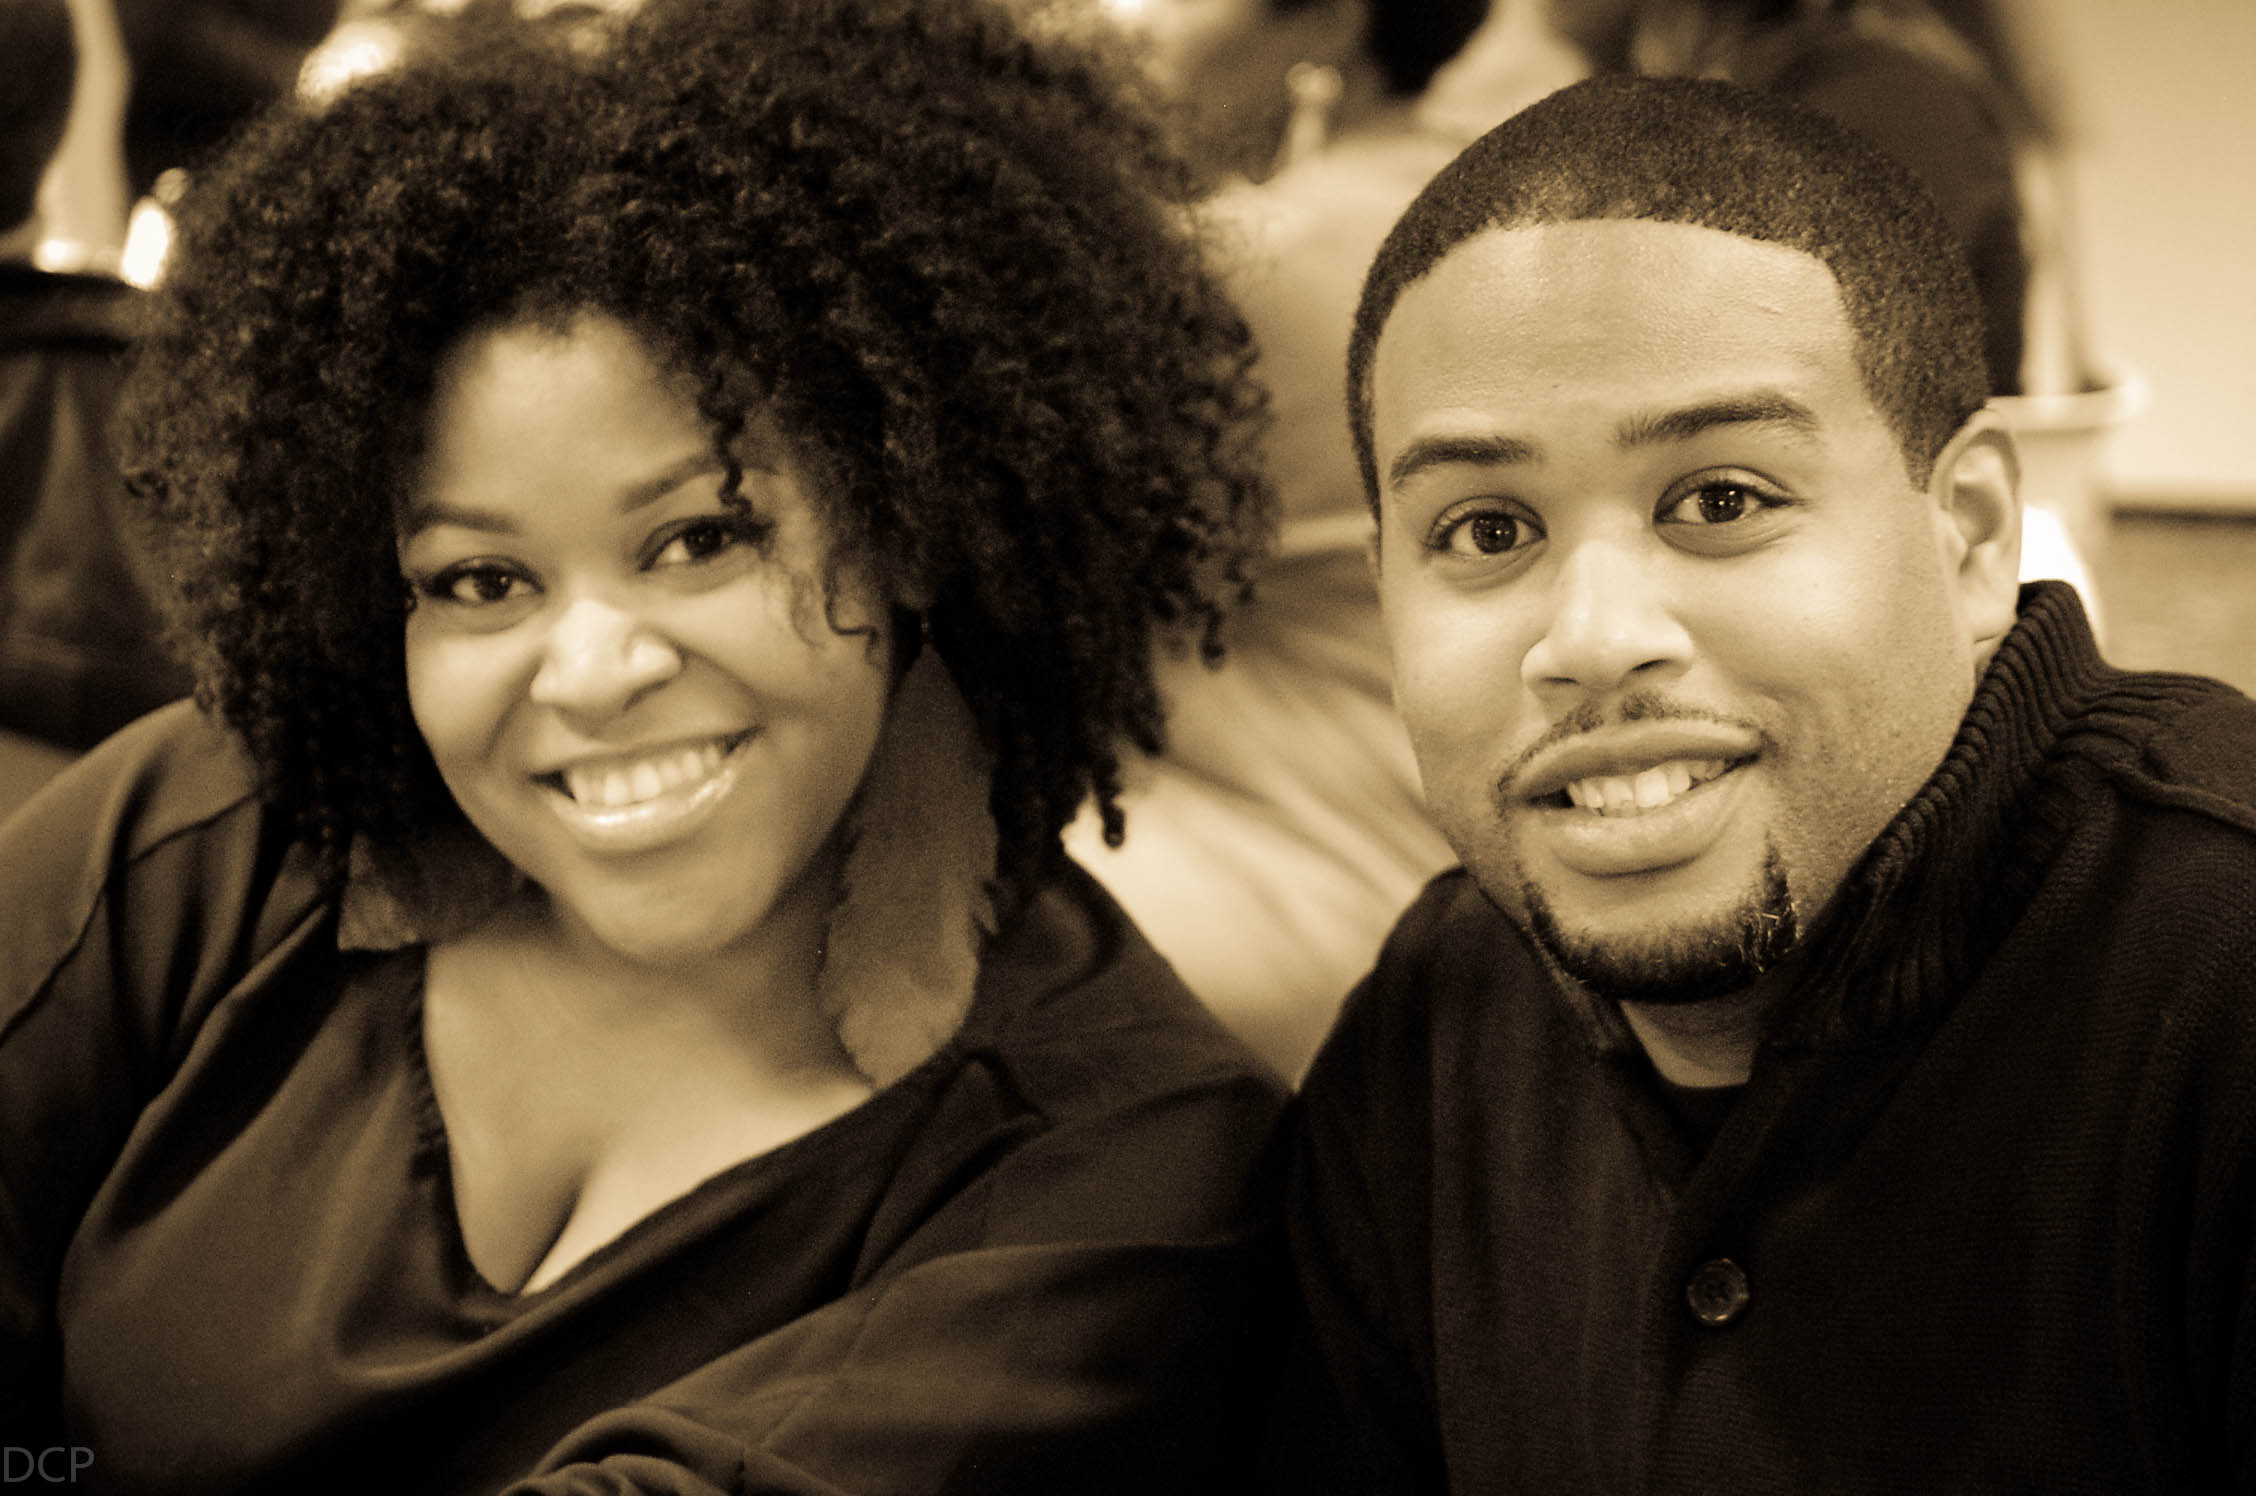 Image 2 of Letitia and Aaron